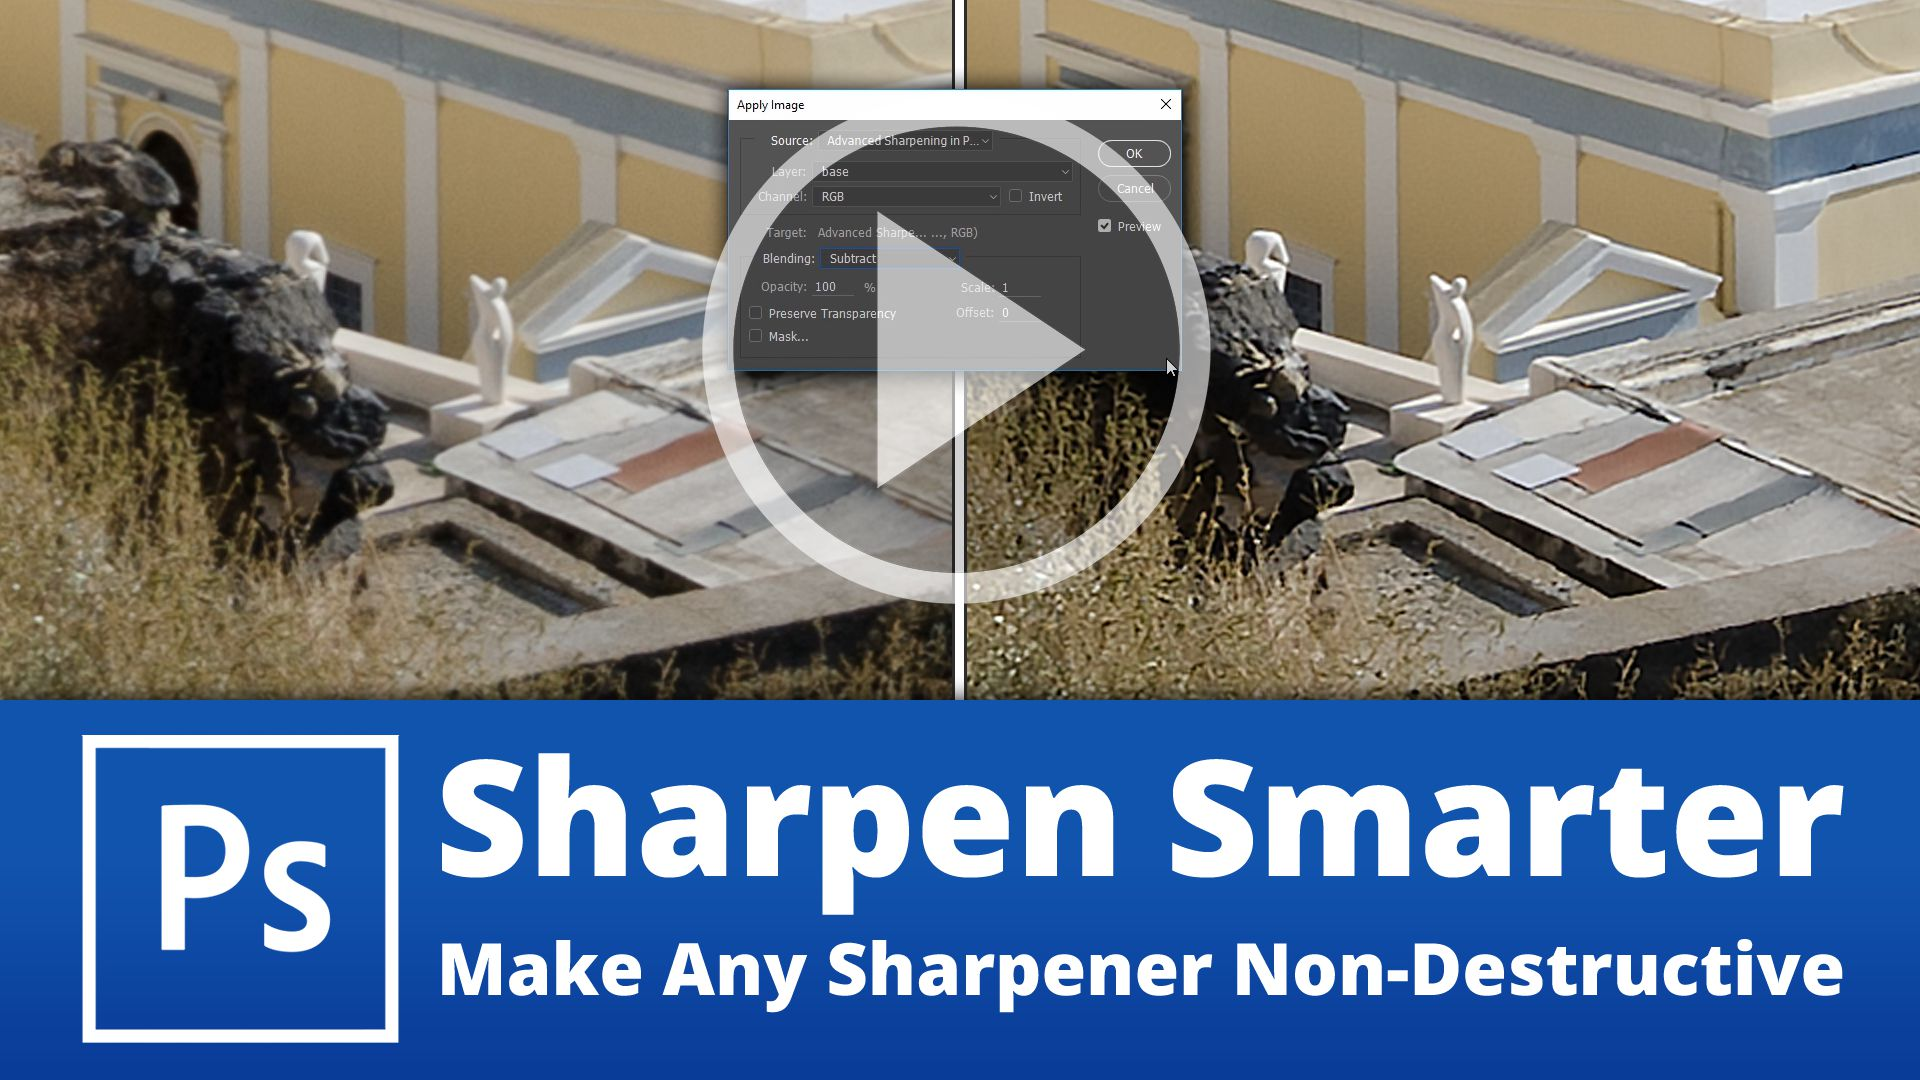 Sharpen Smarter in Photoshop – How to Make Any Sharpening Tool Non-Destructive